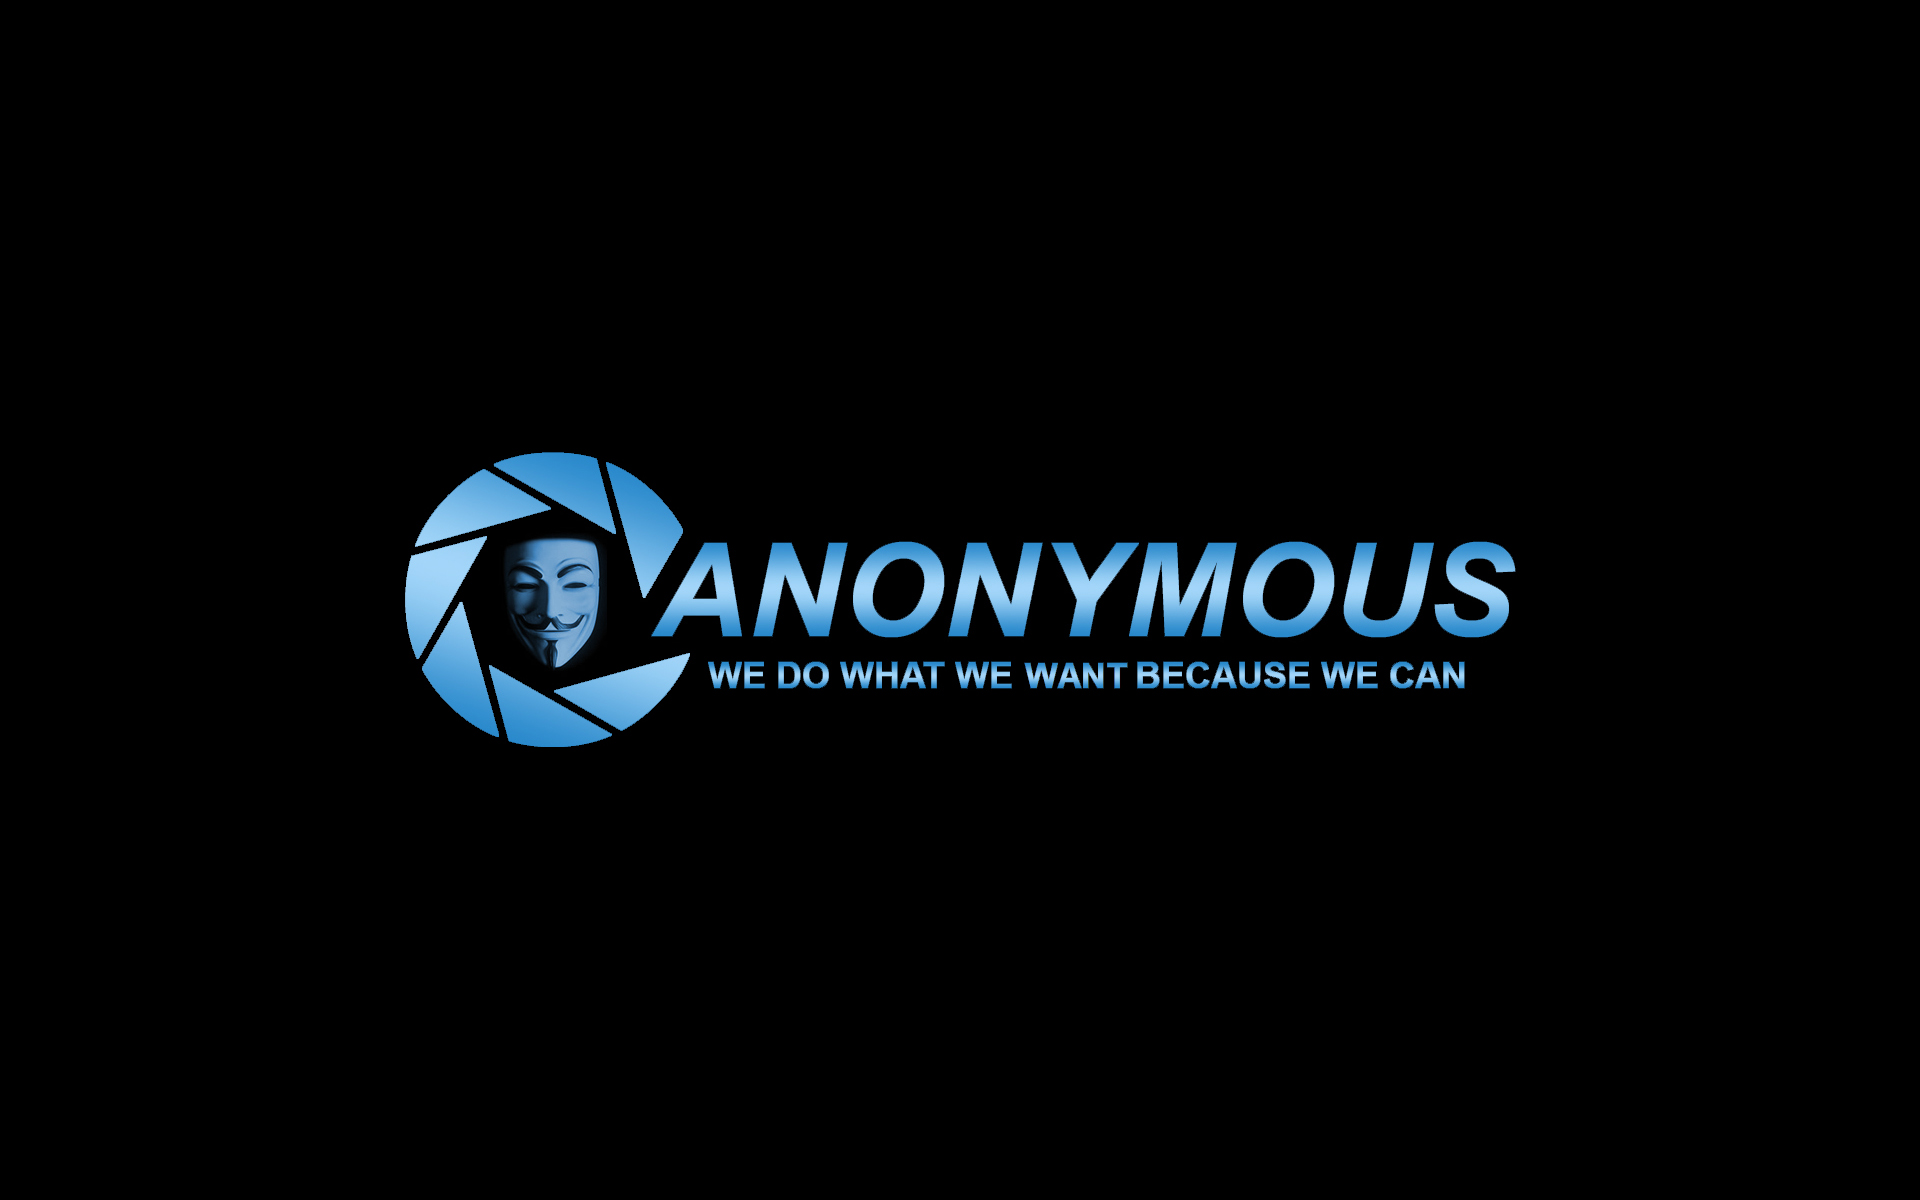 Anonymous Wallpaper HD ImageBankbiz 1920x1200